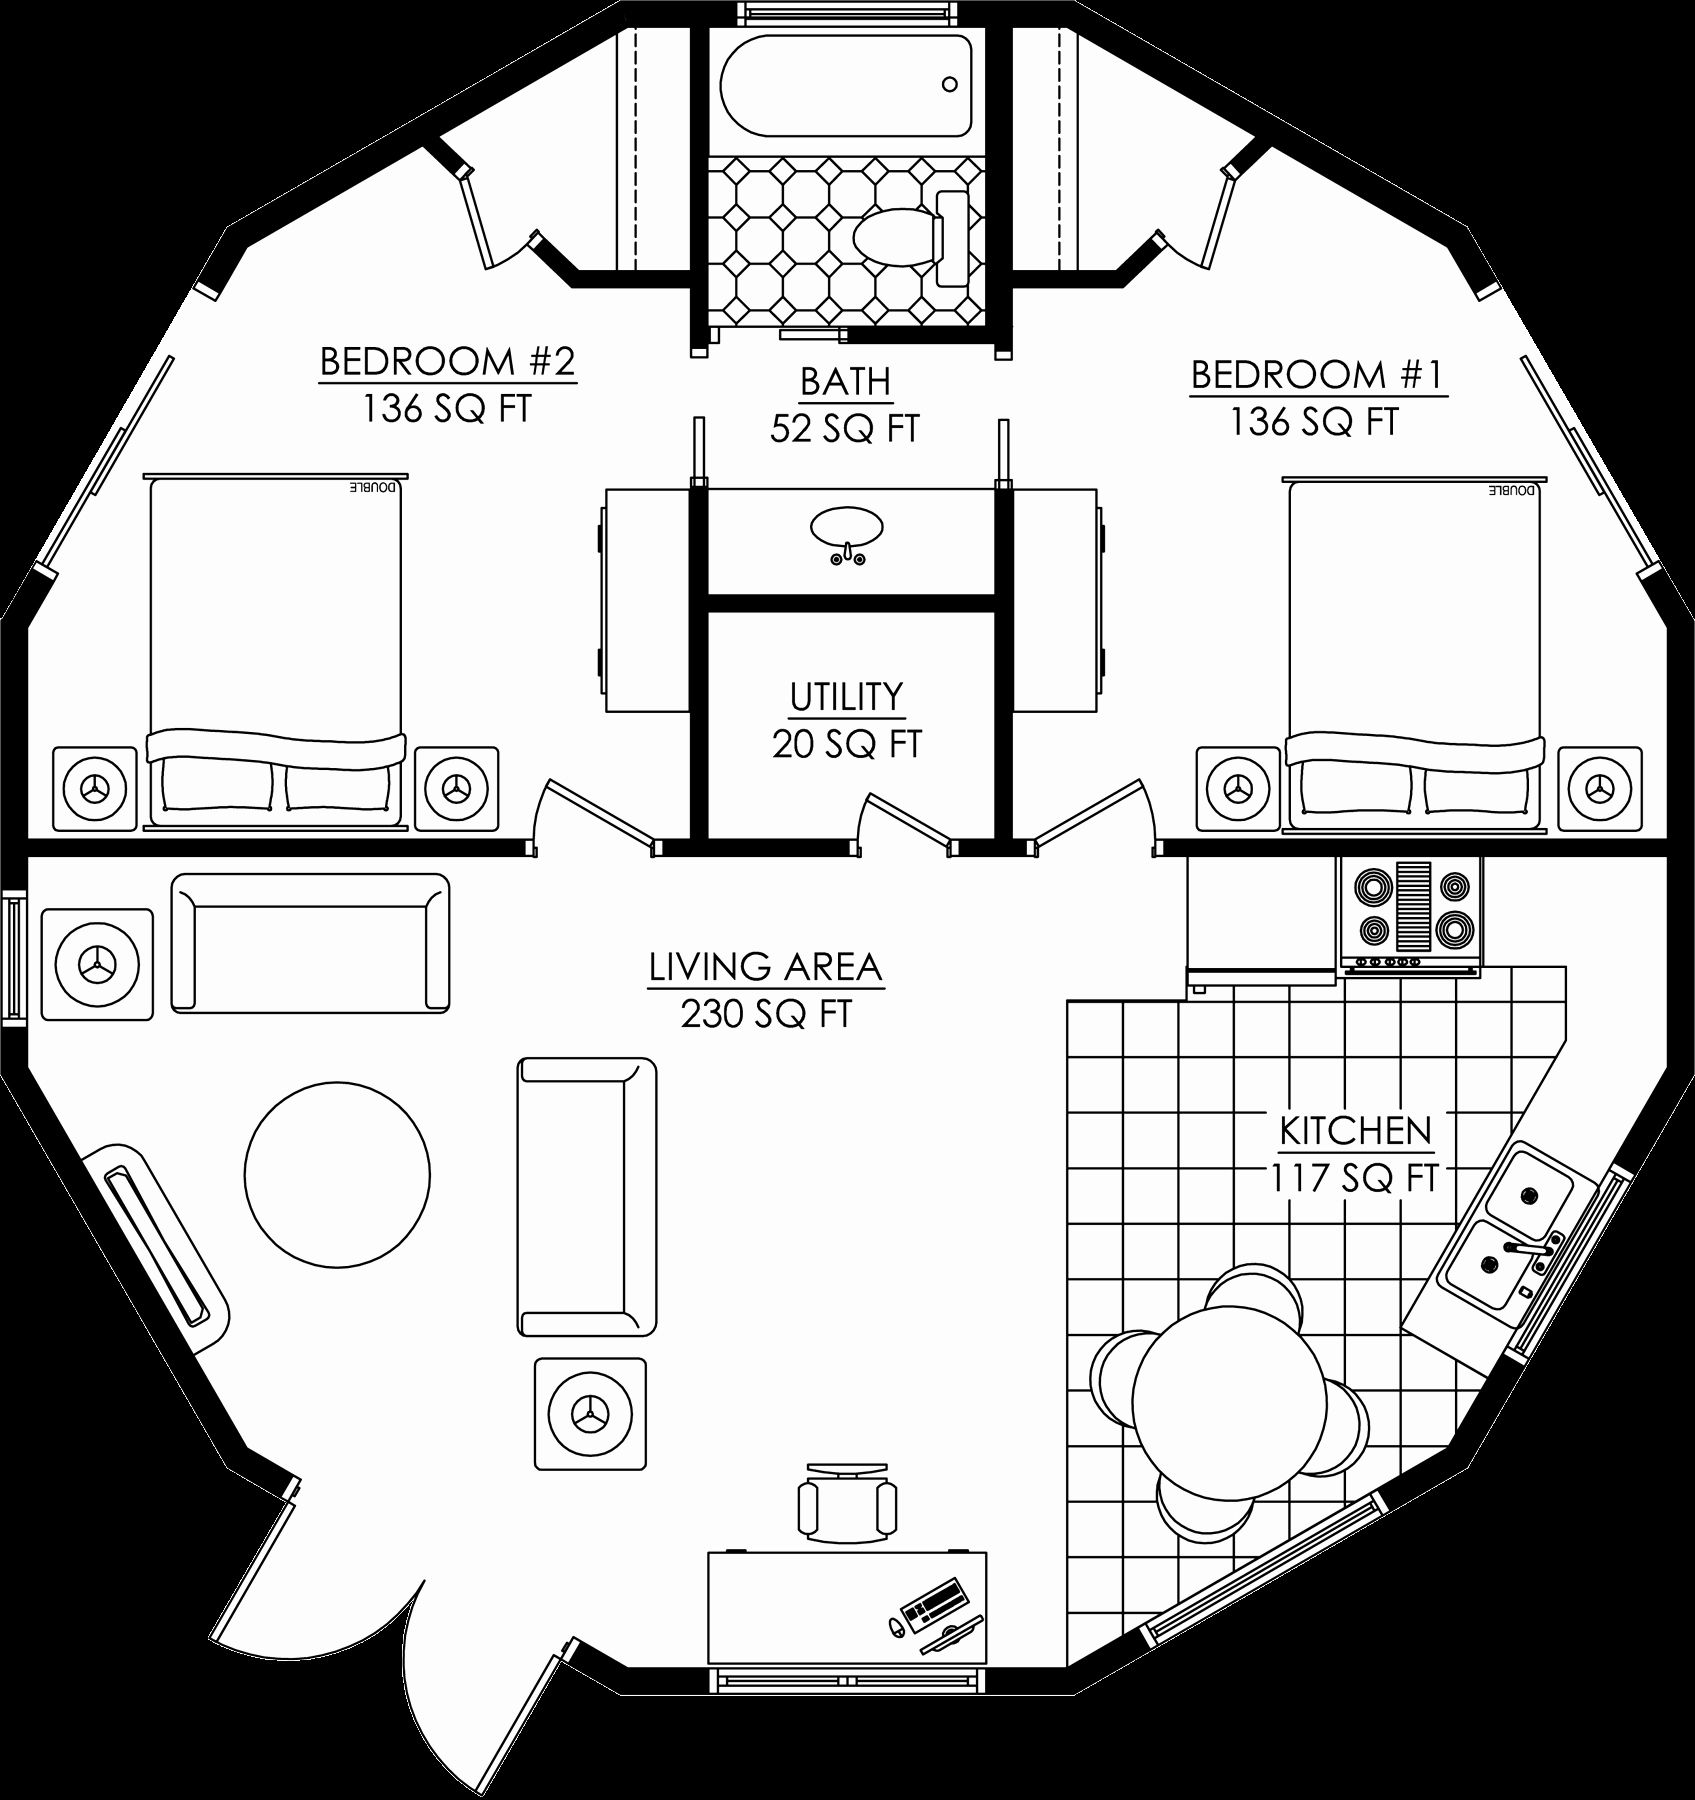 Yurt Interior Floor Plans 50 Fresh Grain Bin House Floor Plans House Building Concept Round House Plans House Plans With Photos House Floor Plans